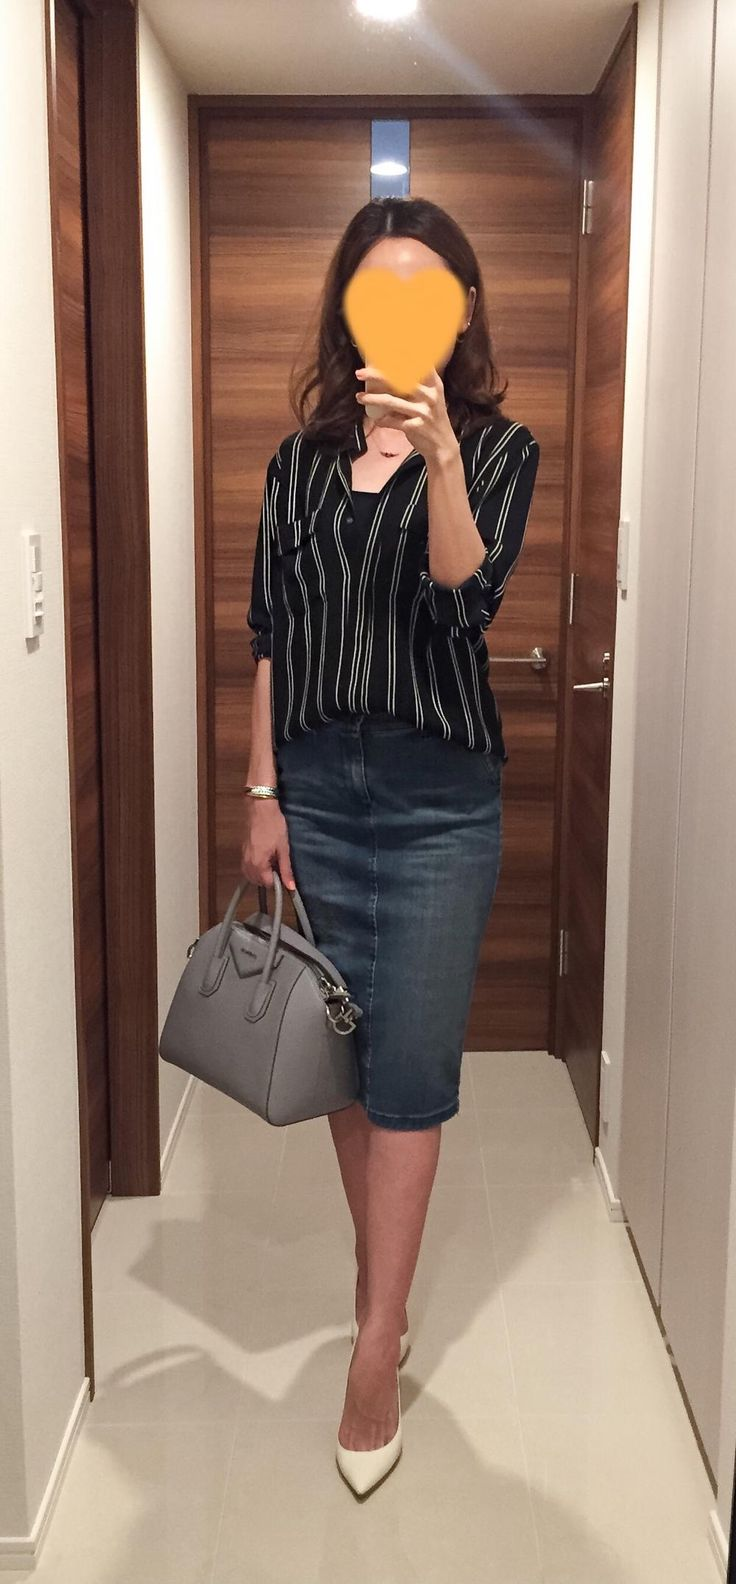 Striped shirt: Ballsey, Denim skirt: SISLEY, Grey bag: GIVENCHY, White heels: Jimmy Choo